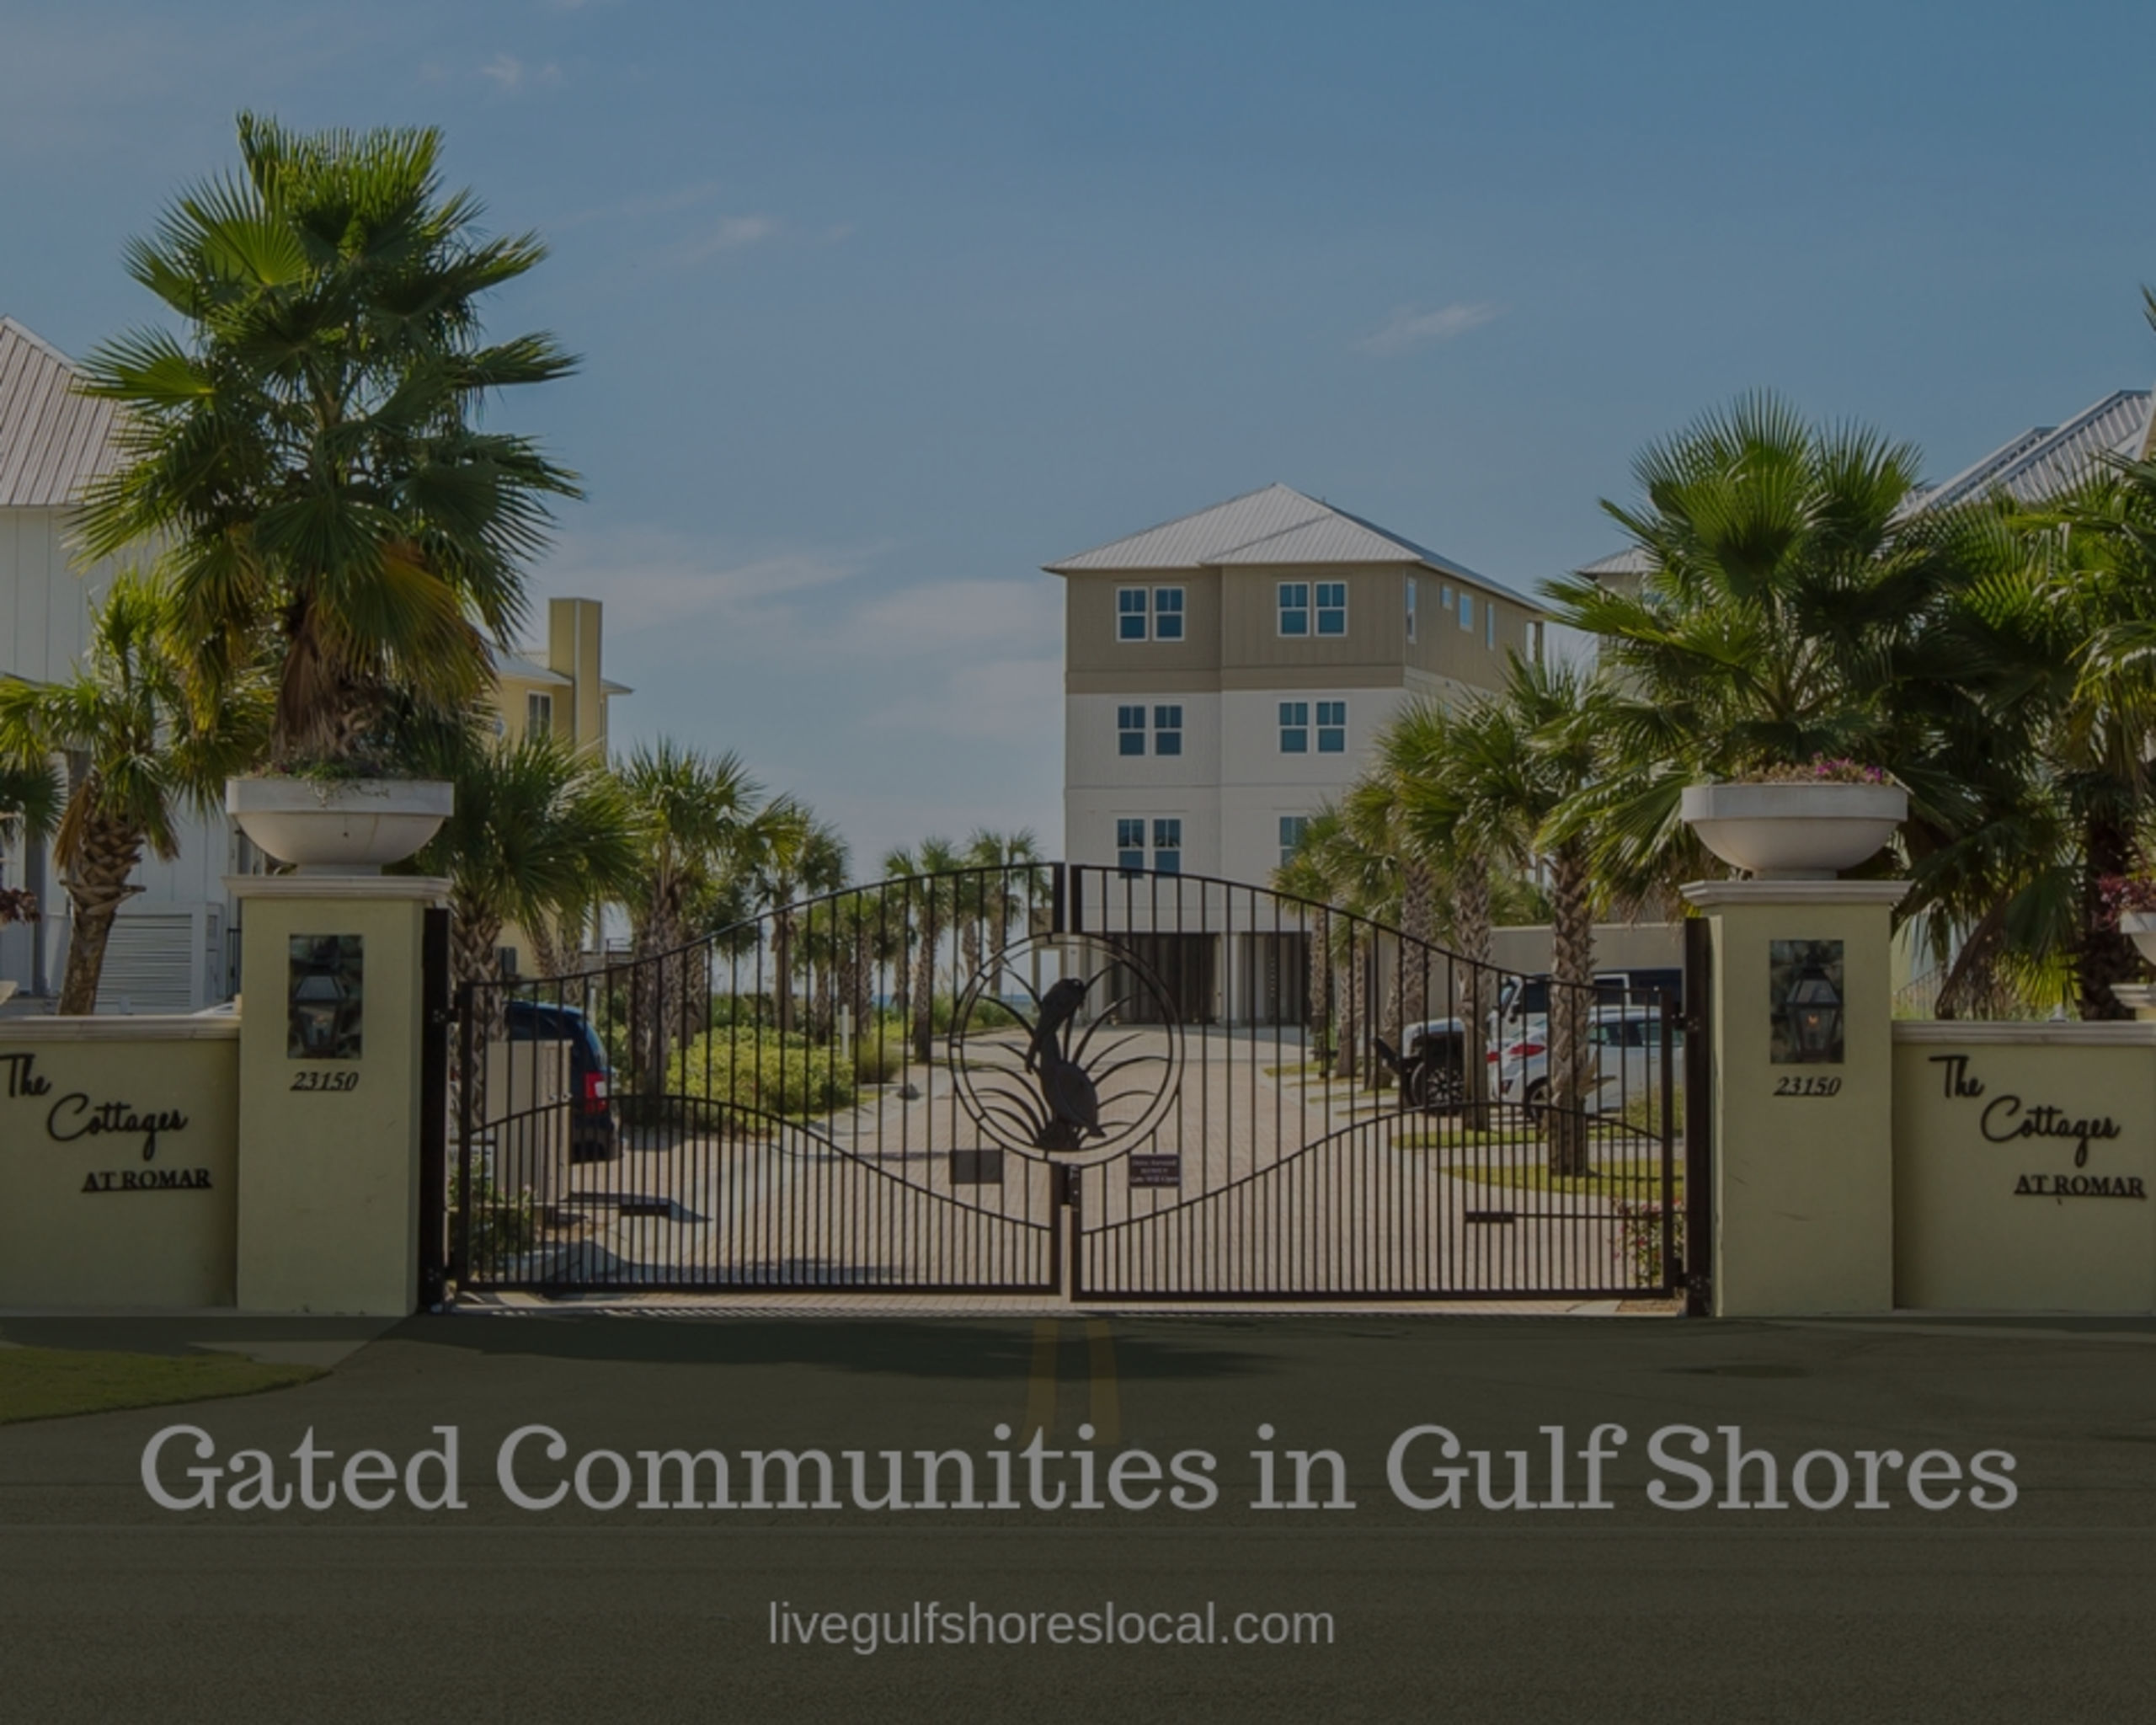 Gated Communities in Gulf Shores